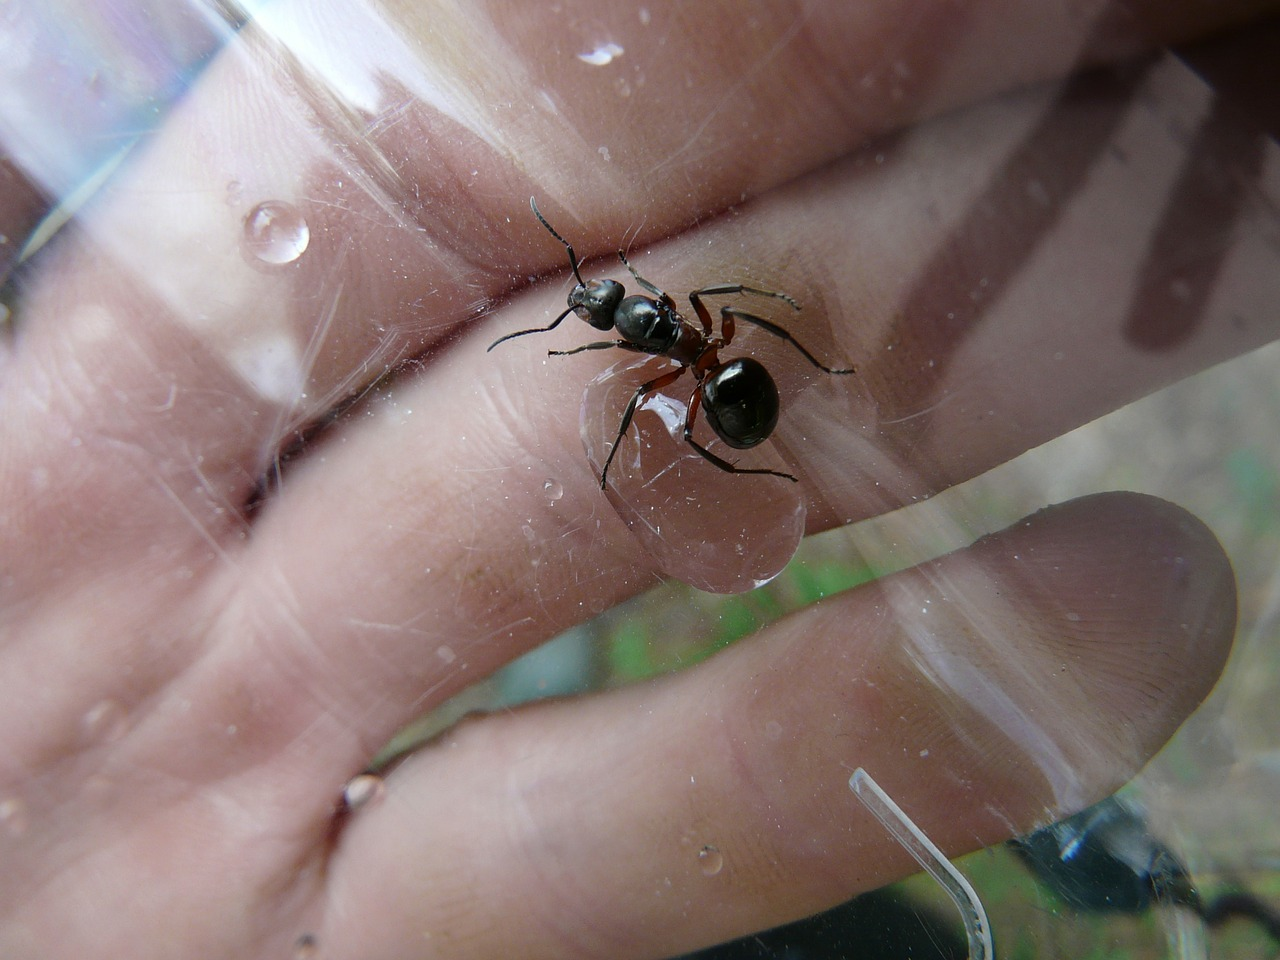 Ant on hand palm